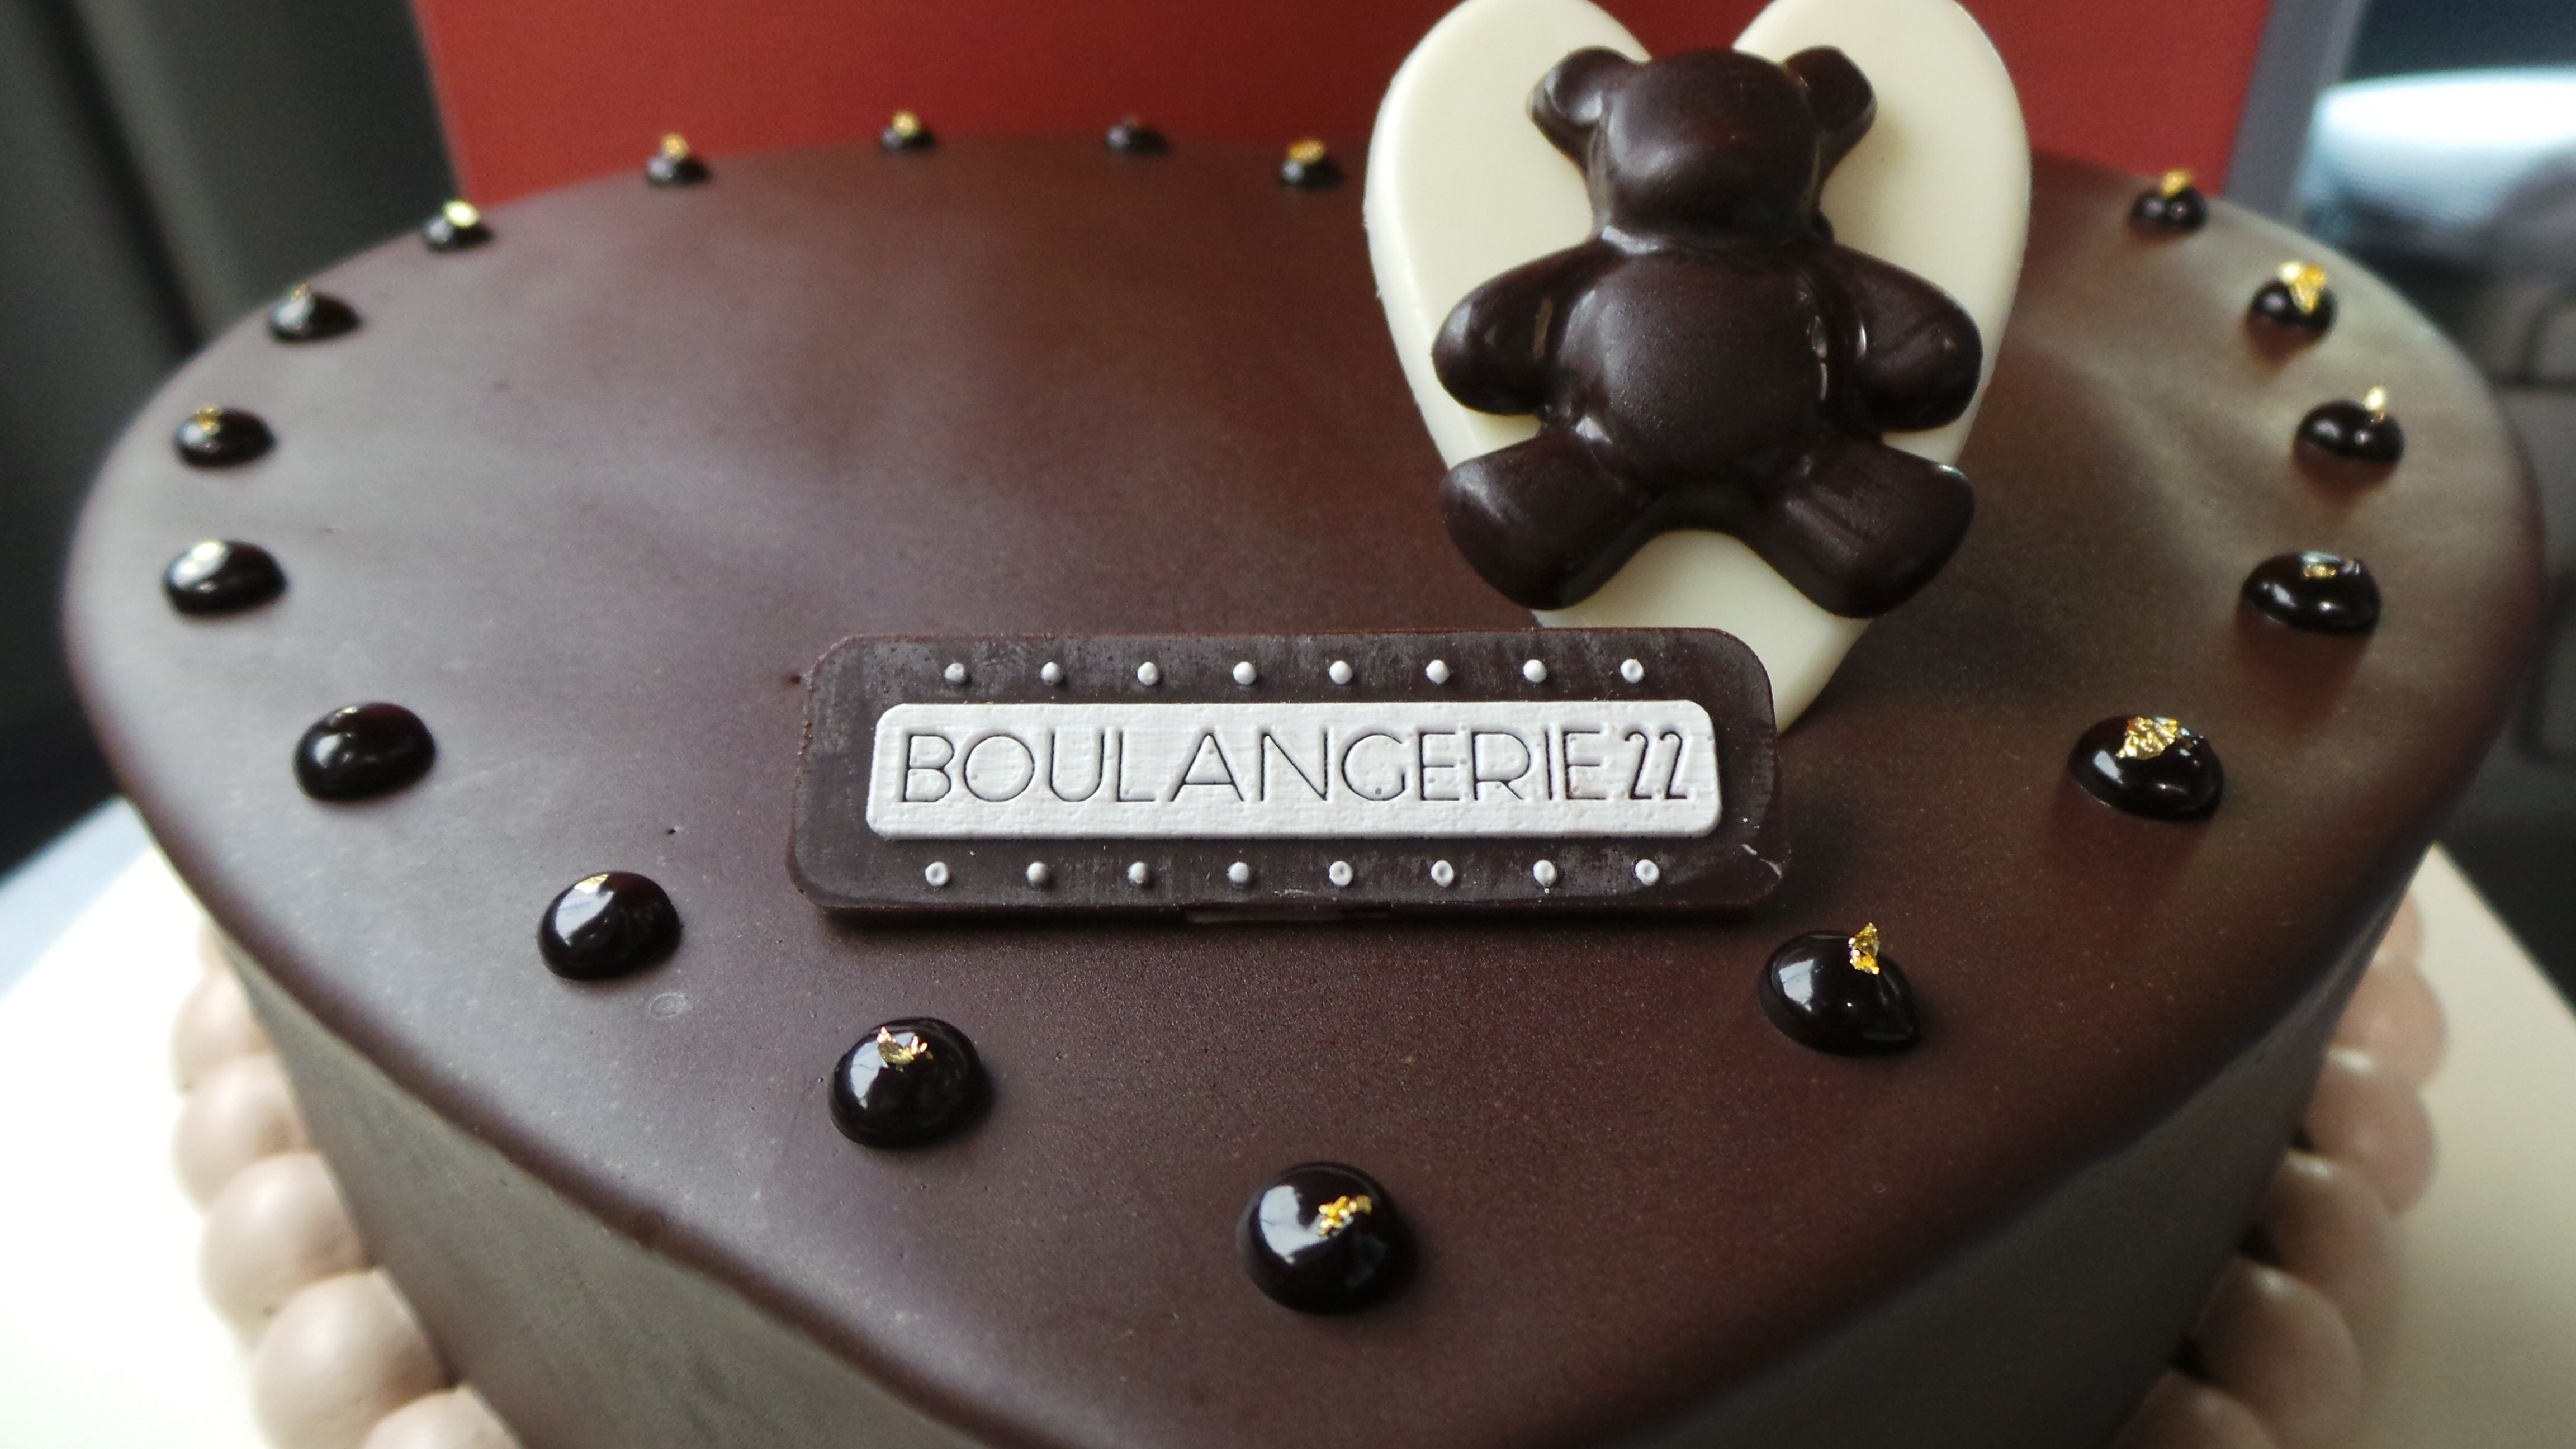 Boulangerie22, Tous Les Jours, French Korean Japanese pastries, Pizza, Chicken Floss Bread, Cream Cheese Bun, Sweet and Savory Pastries,